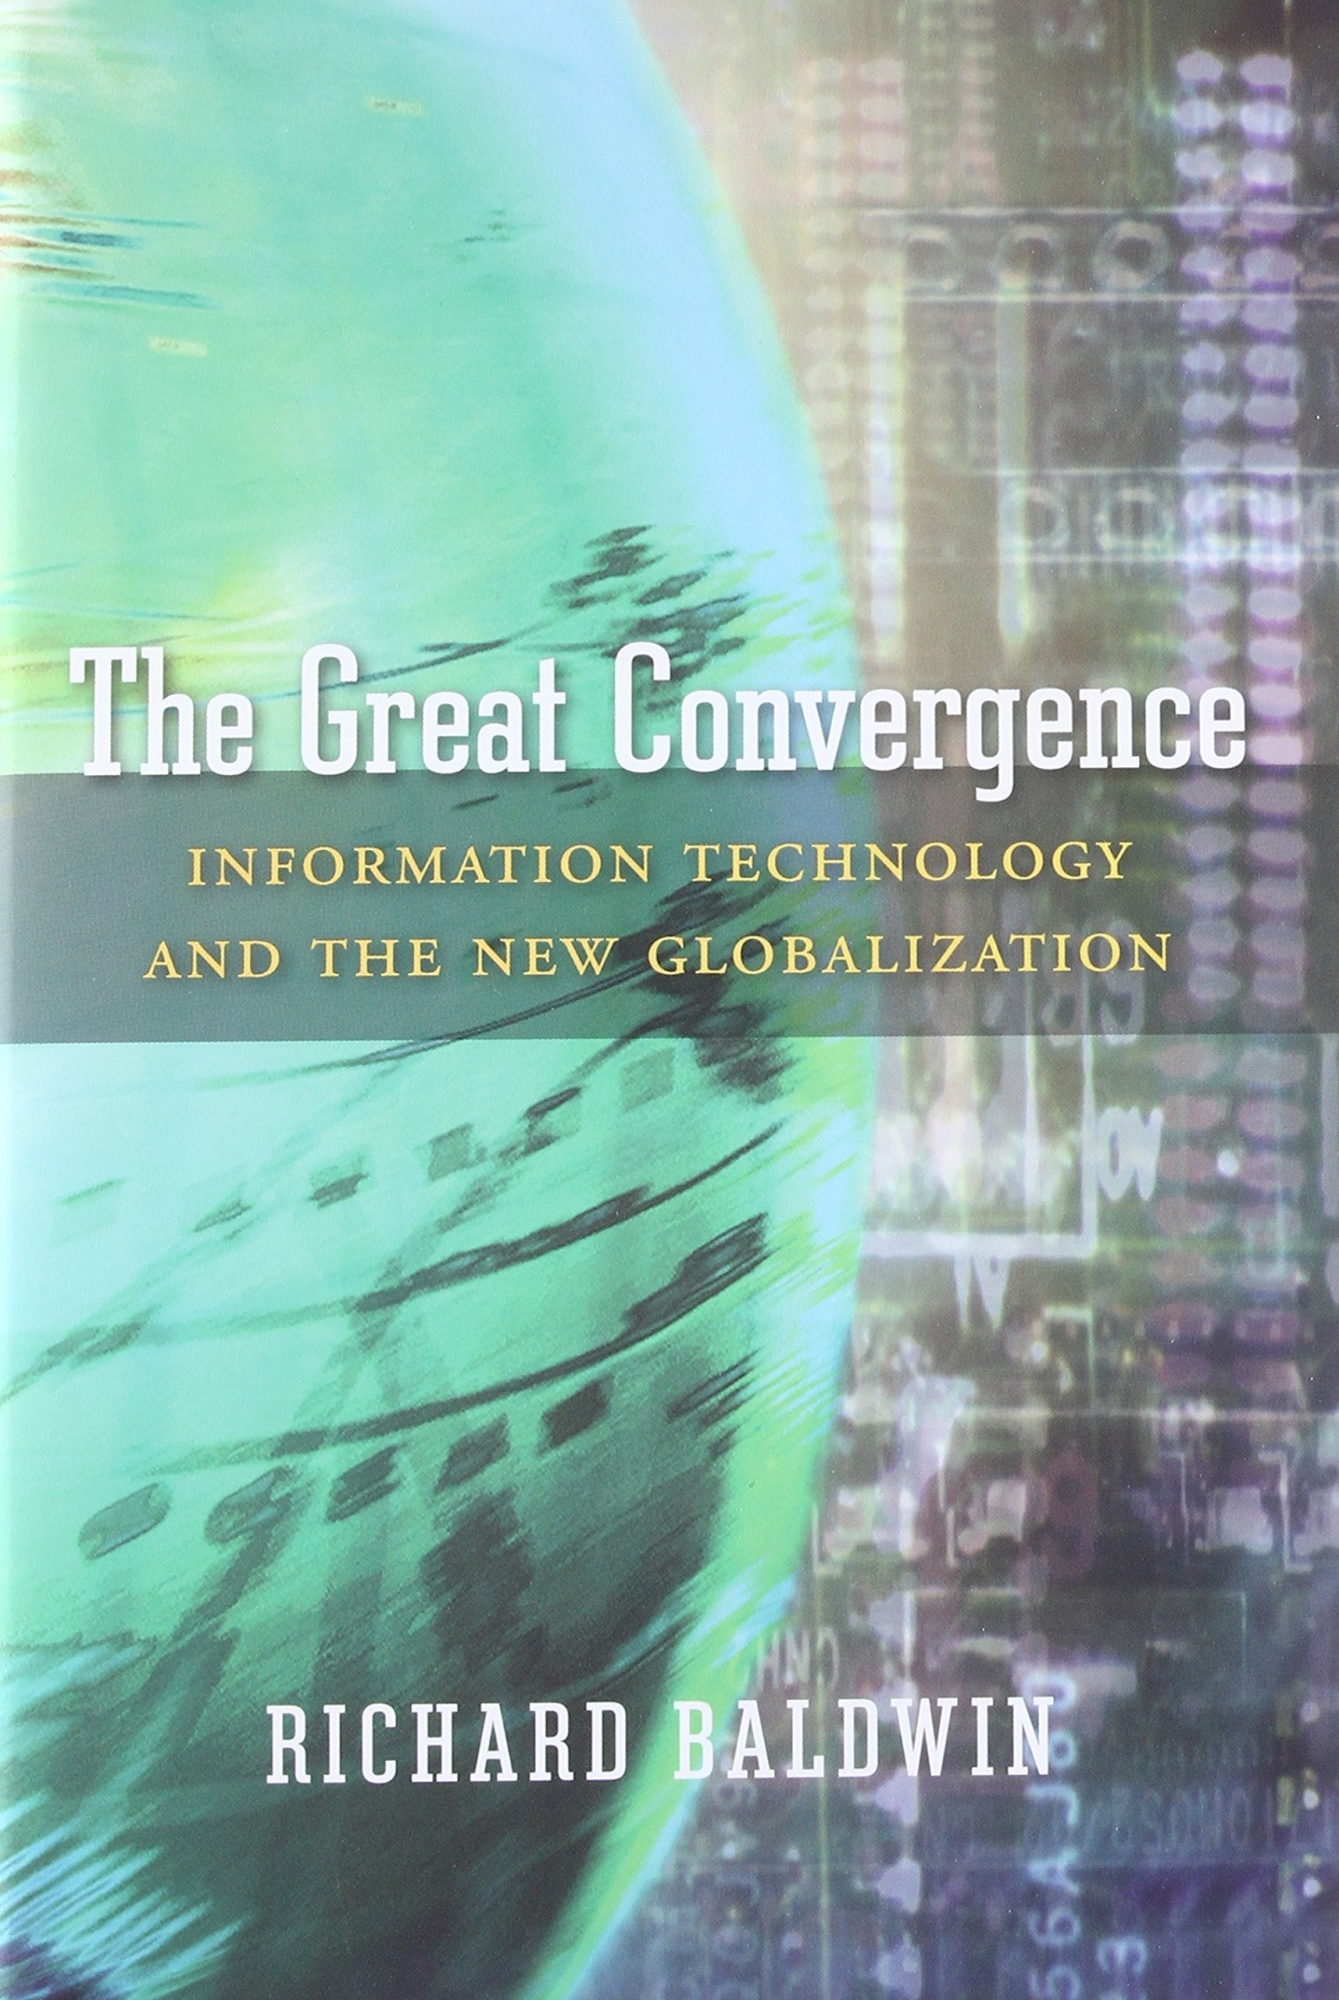 The Great ConvergenceInformation Technology and the New Globalization